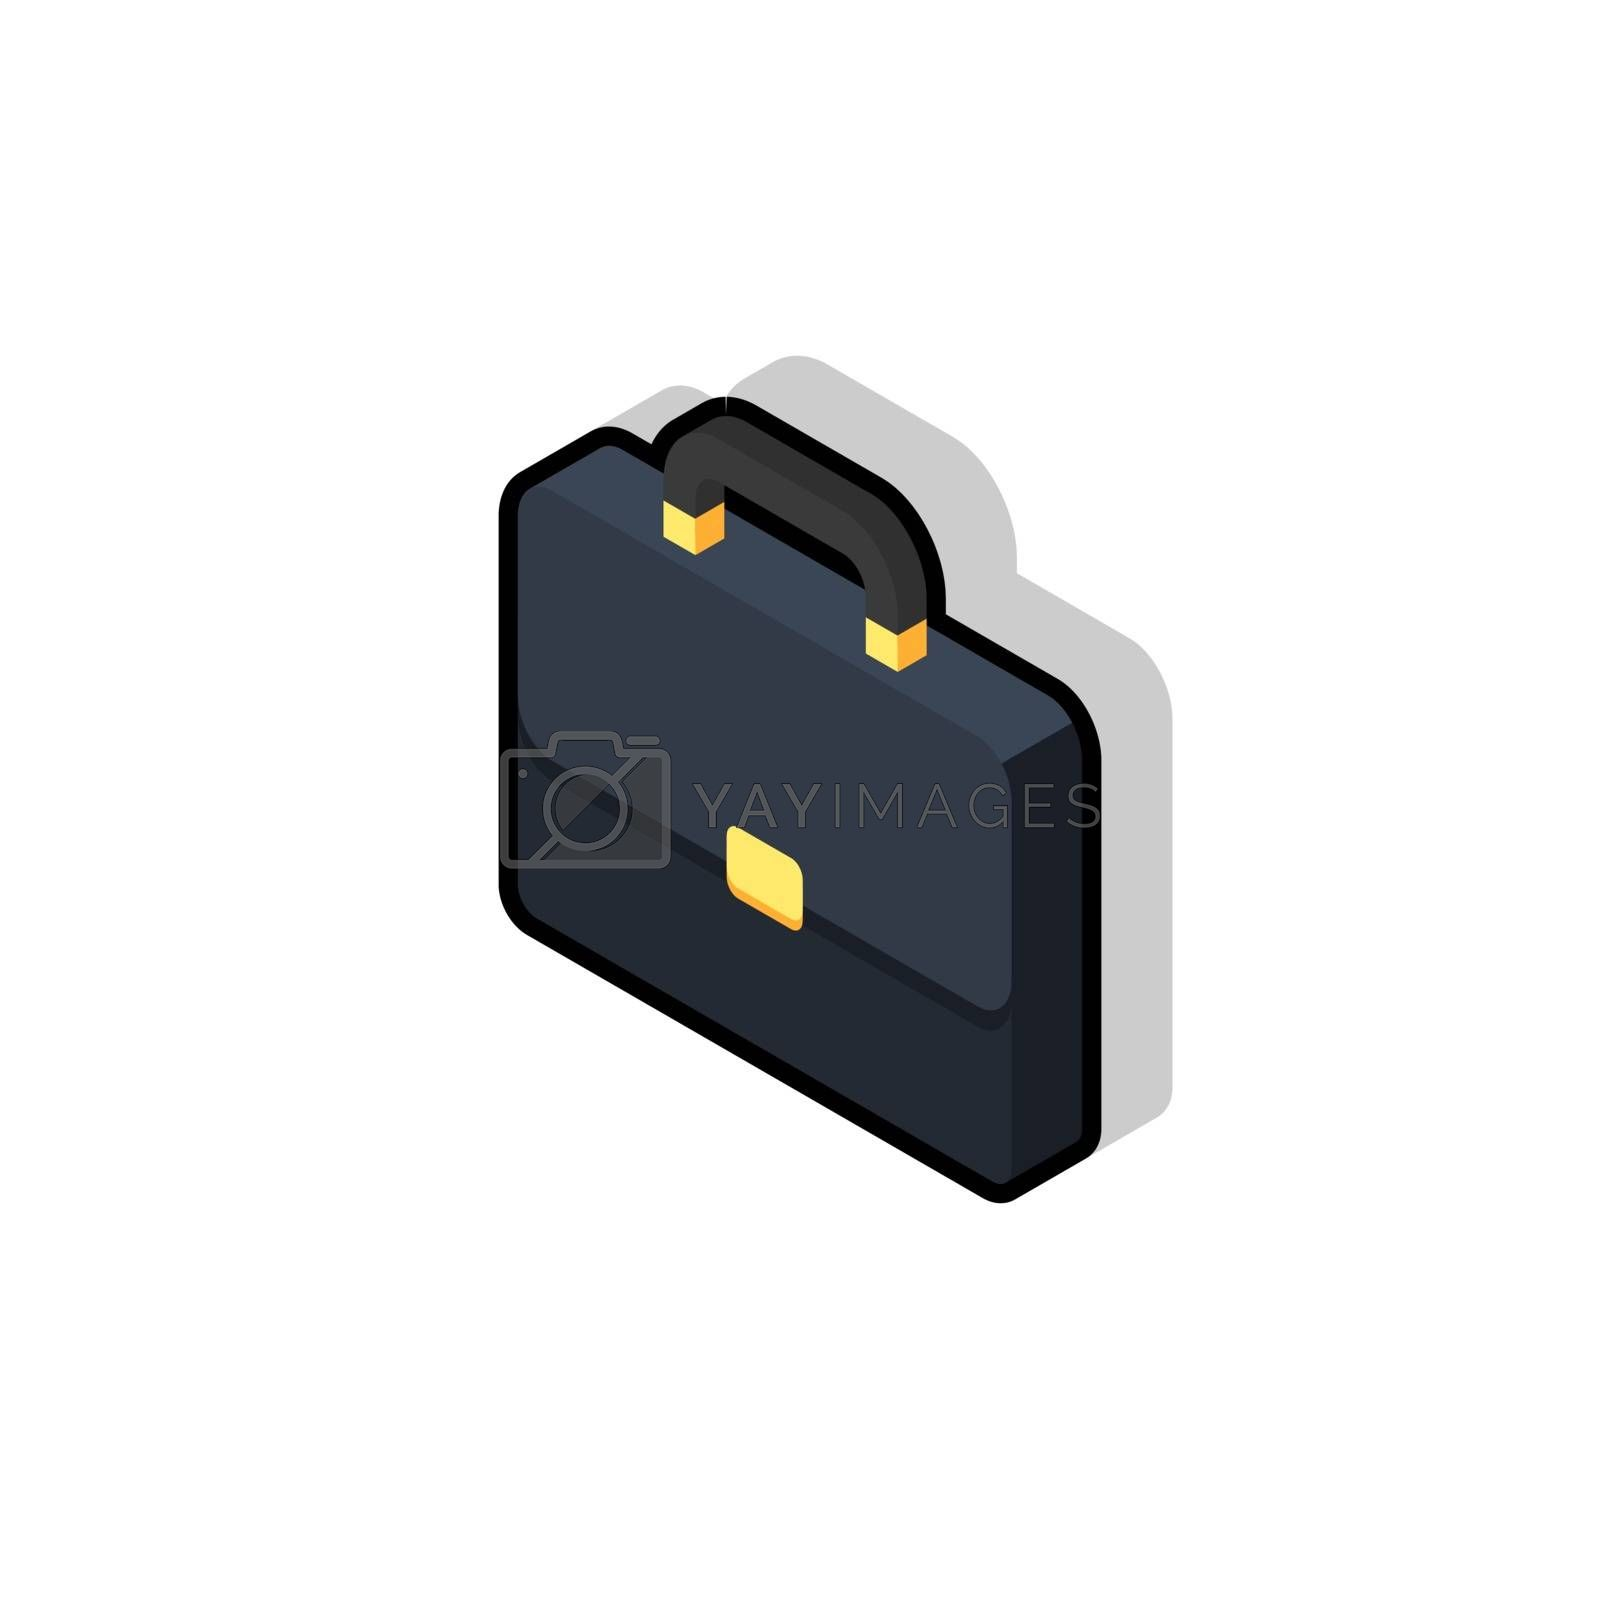 Briefcase left view Black Stroke and Shadow icon vector isometric. Flat style vector illustration.